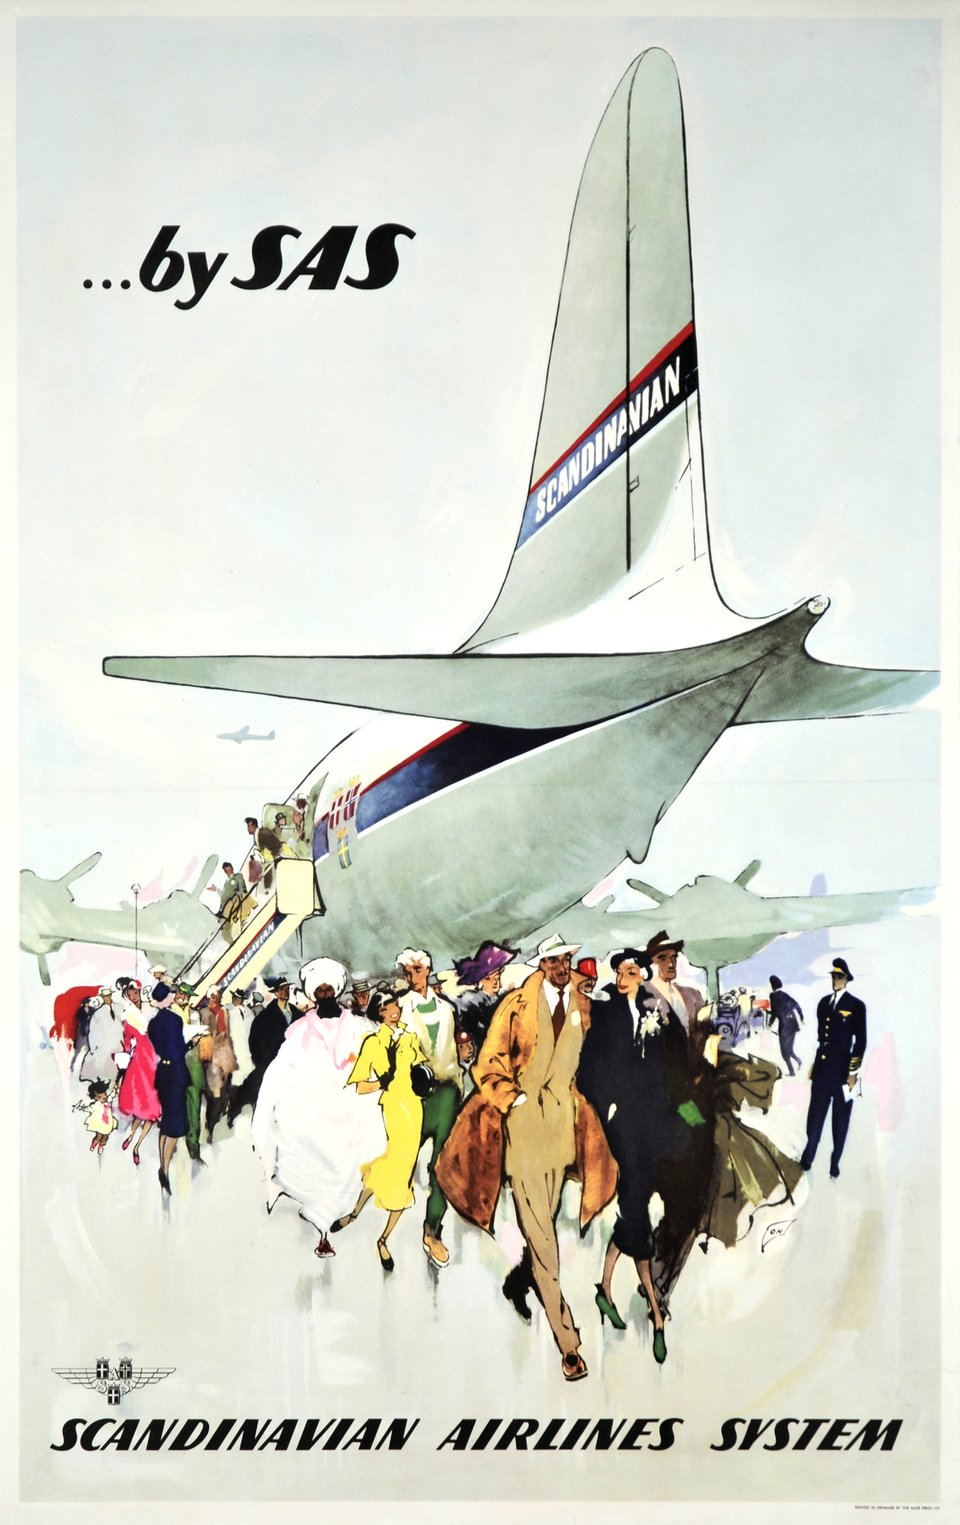 SAS, Scandinavian Airlines System – Affiche ancienne – Otto NIELSEN – 1958